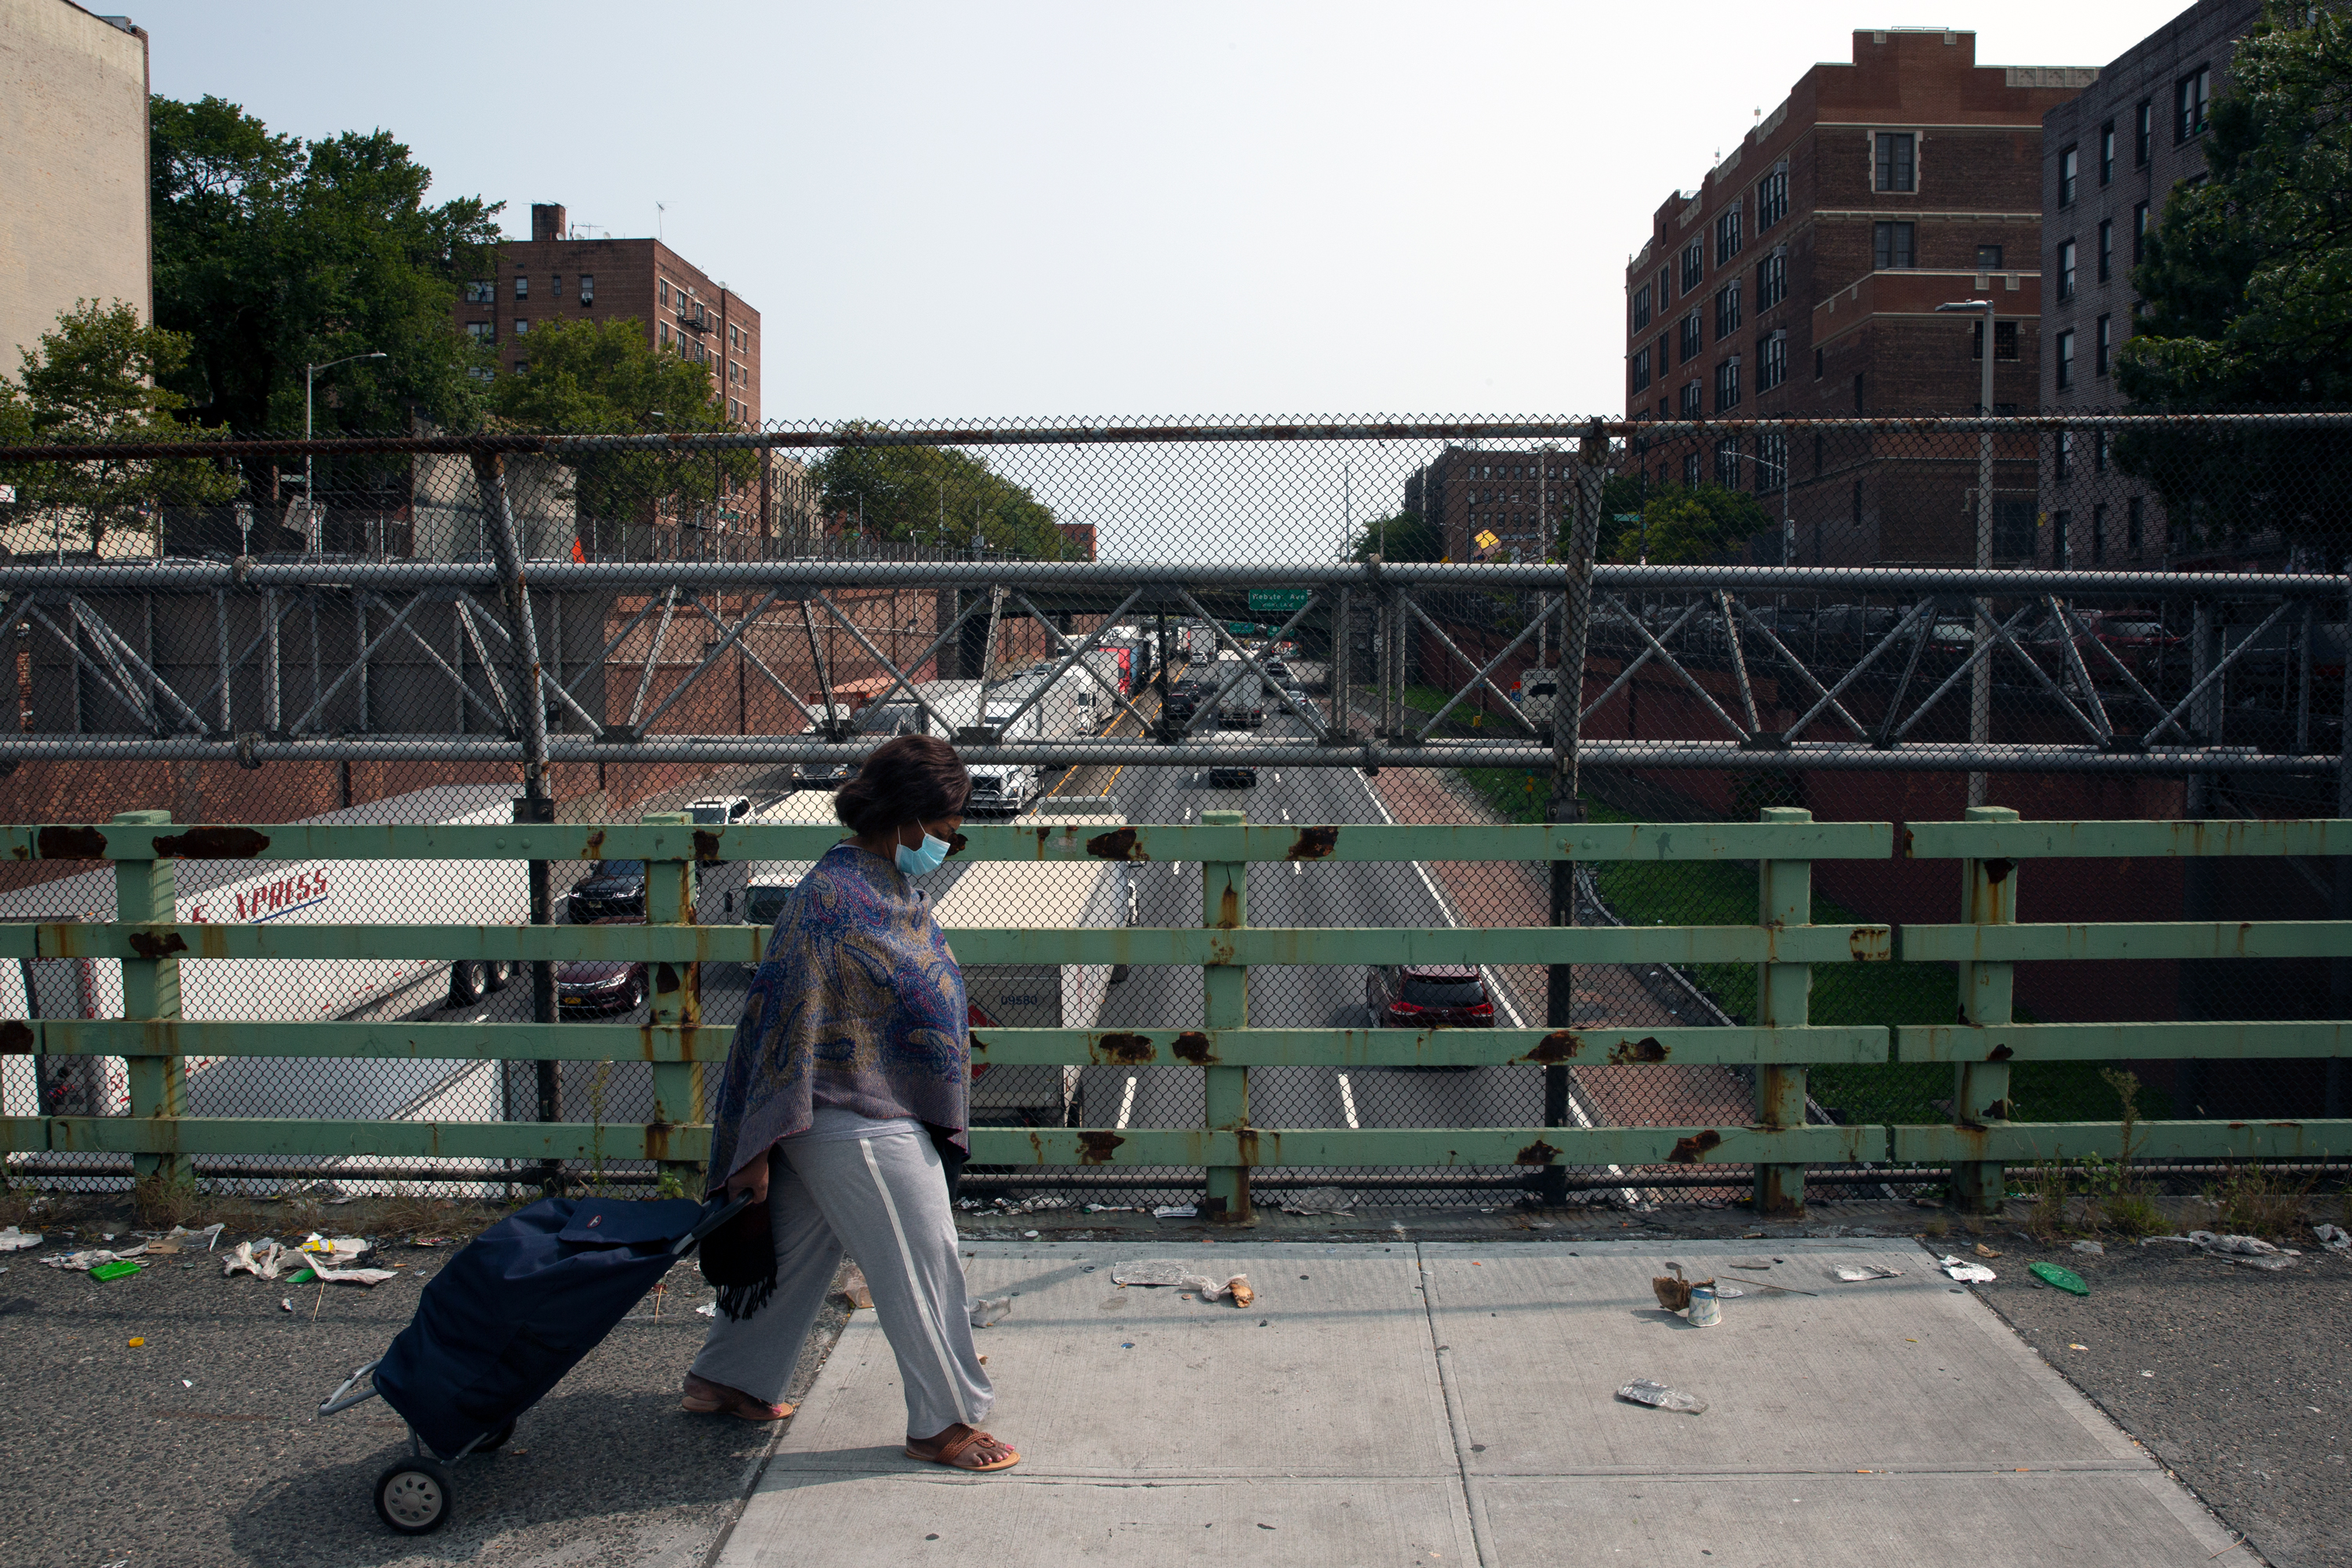 There has been higher rates of pollution in The Bronx caused by highways including the Cross Bronx Expressway, Sept. 15, 2020.